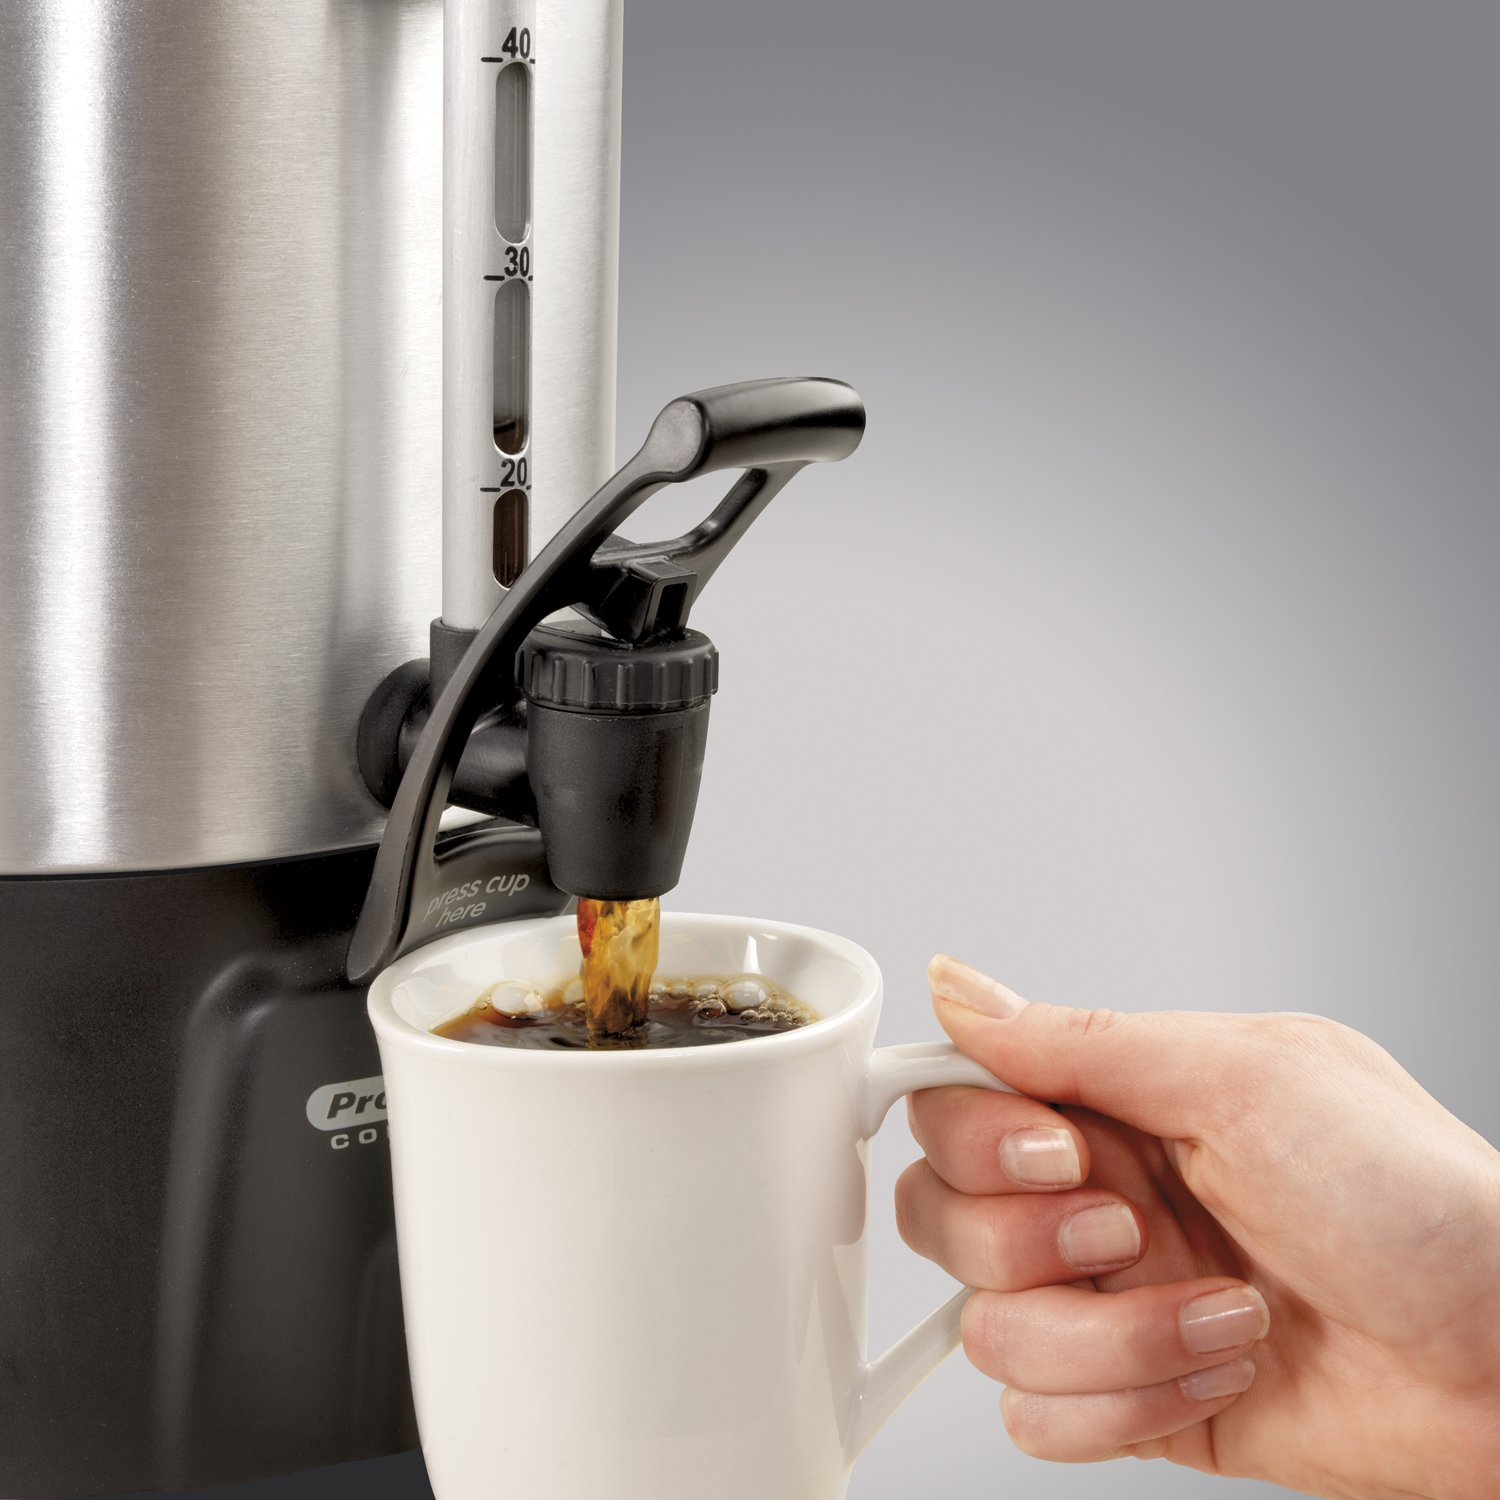 Proctor Silex Commercial 45060 Coffee Urn 60 Cup Aluminum Coffee Level Indicator 12.56 Length One Hand Dispensing 16.93 Height Stainless Steel 11.73 Width